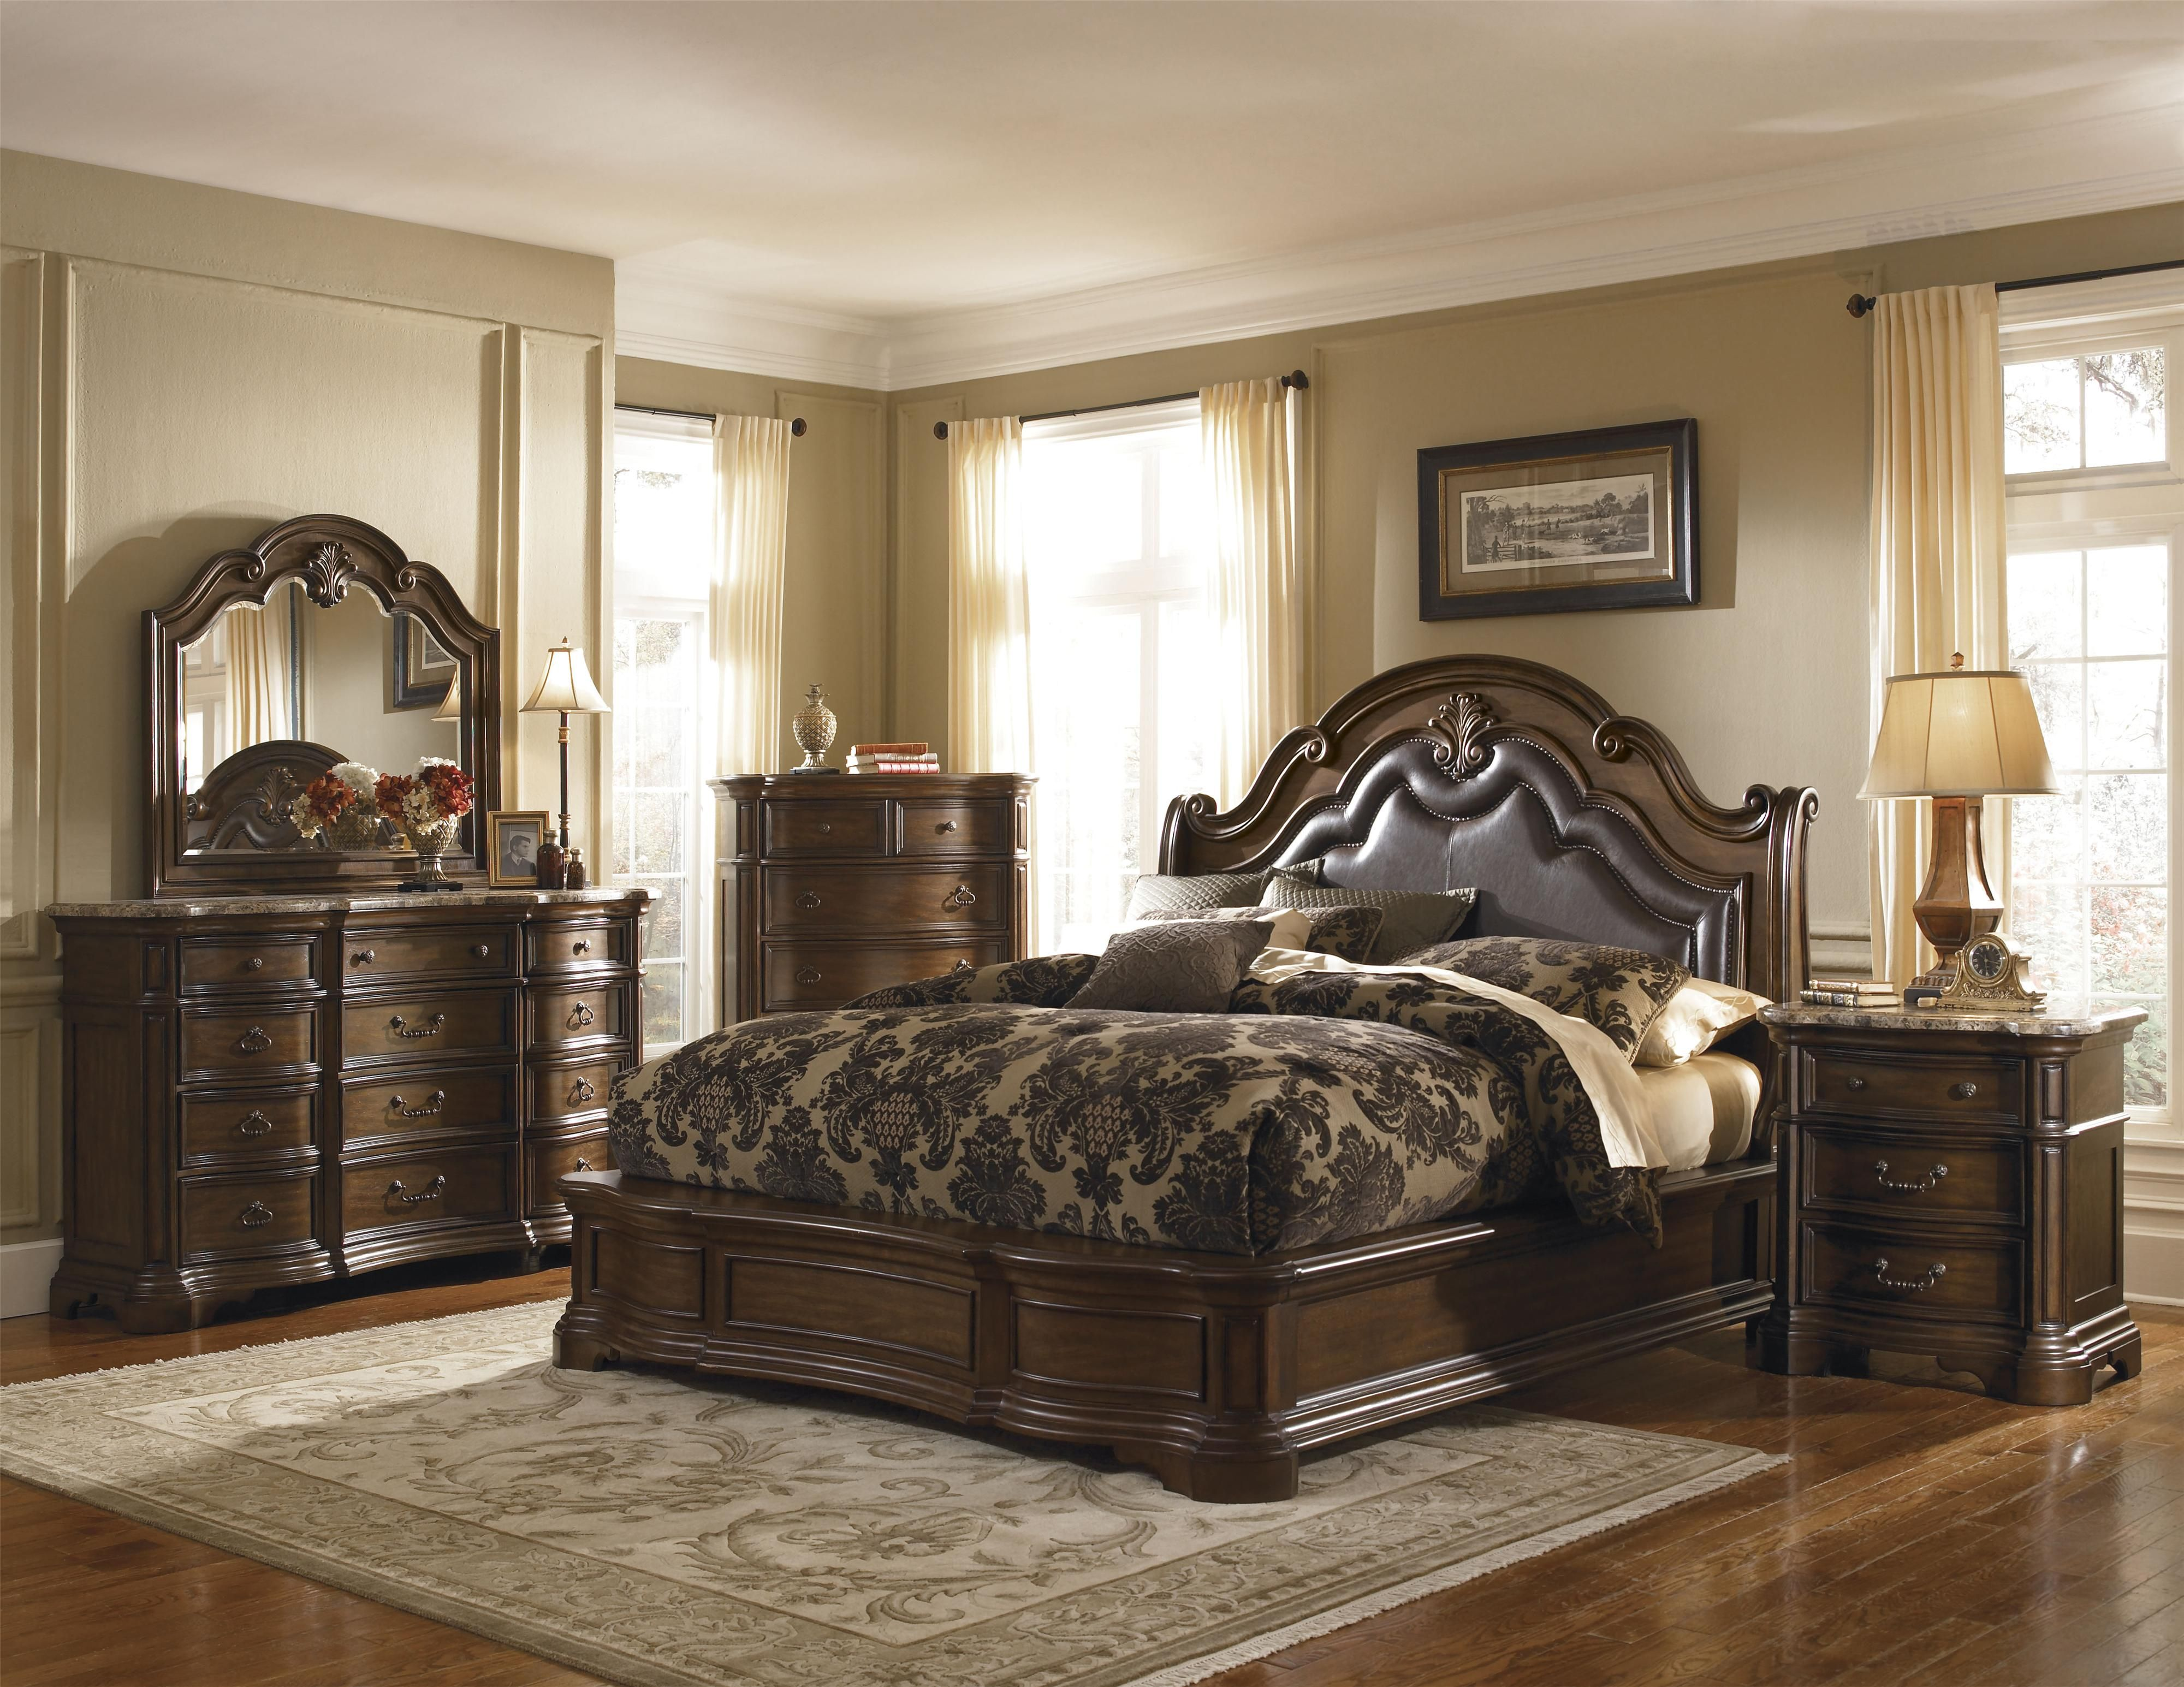 Superieur Courtland Queen Traditional Platform Bed With Upholstered Leather Headboard  And Nailhead Accents By Pulaski Furniture